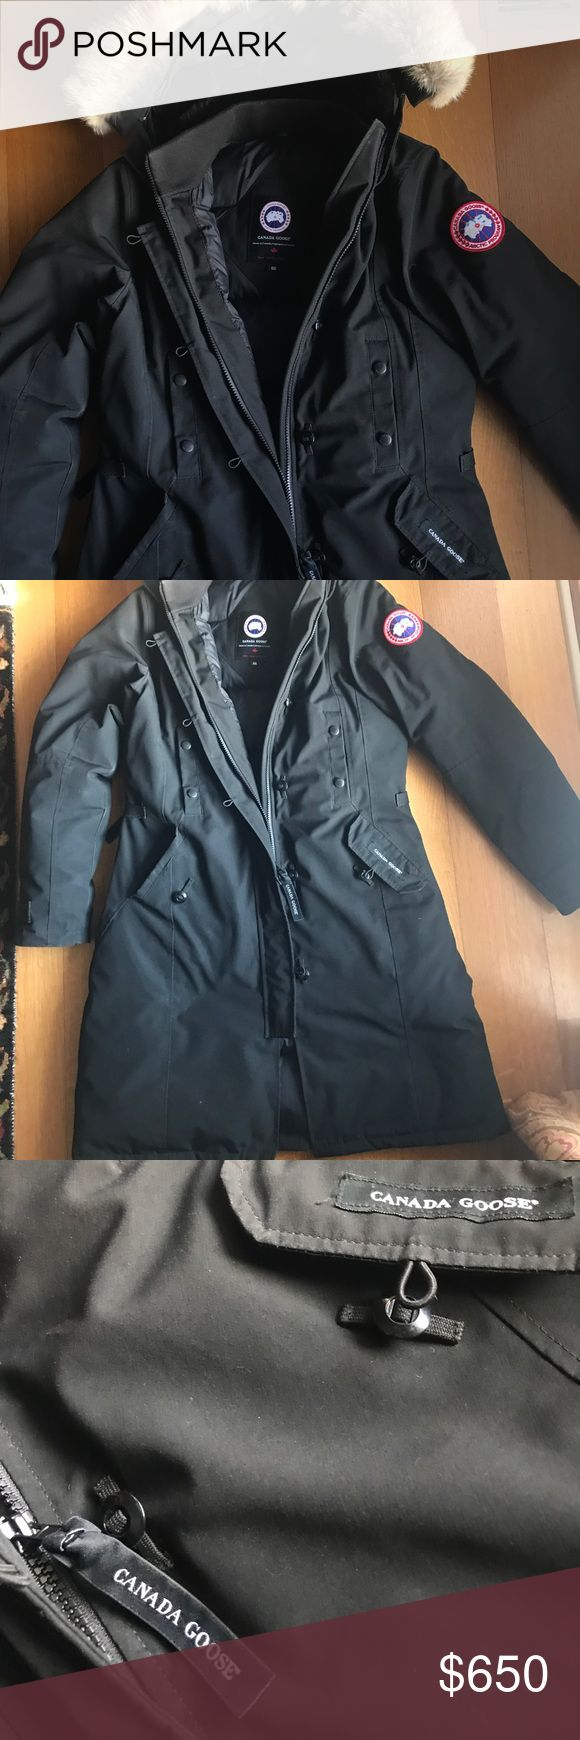 Canada Goose Trilium Parka Canada Goose Trilium Parka in Black, size medium. This super warm coat comes to mid-thigh length, and compliments any winter look. Both stylish and functional. This coat is about a year old but shows no signs of wear or tear. Canada Goose Jackets & Coats Puffers